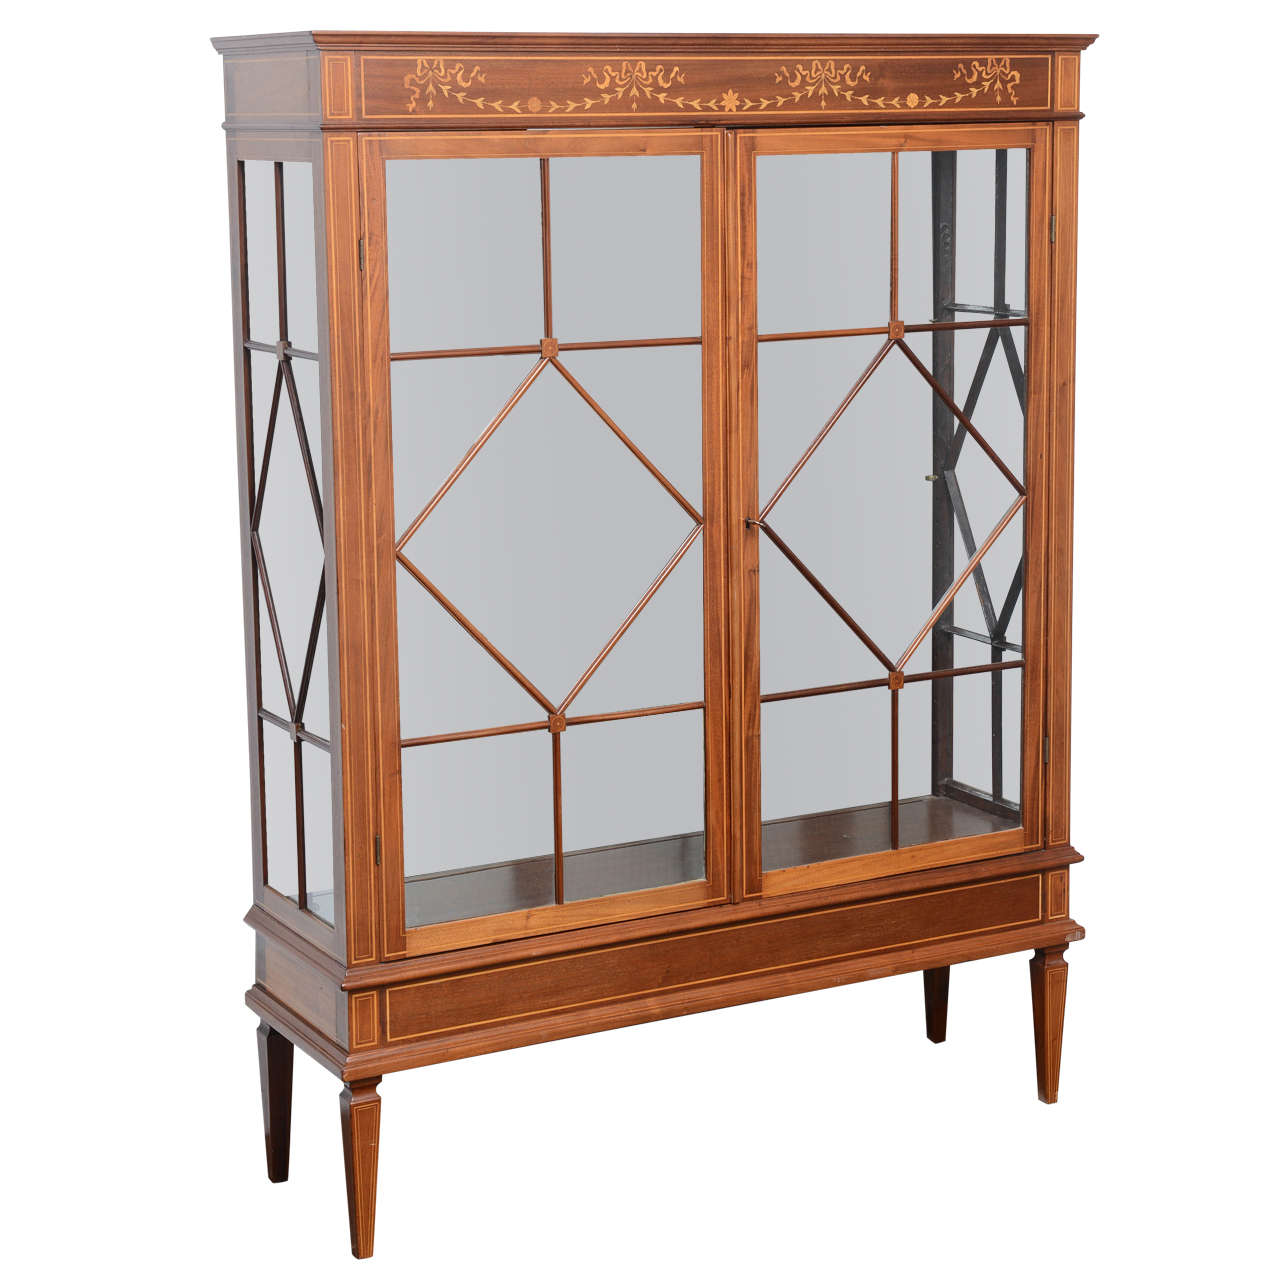 #804327 Antique Mahogany Display Cabinet Made In England  with 1280x1280 px of Recommended Mahogany Display Cabinets With Glass Doors 12801280 save image @ avoidforclosure.info